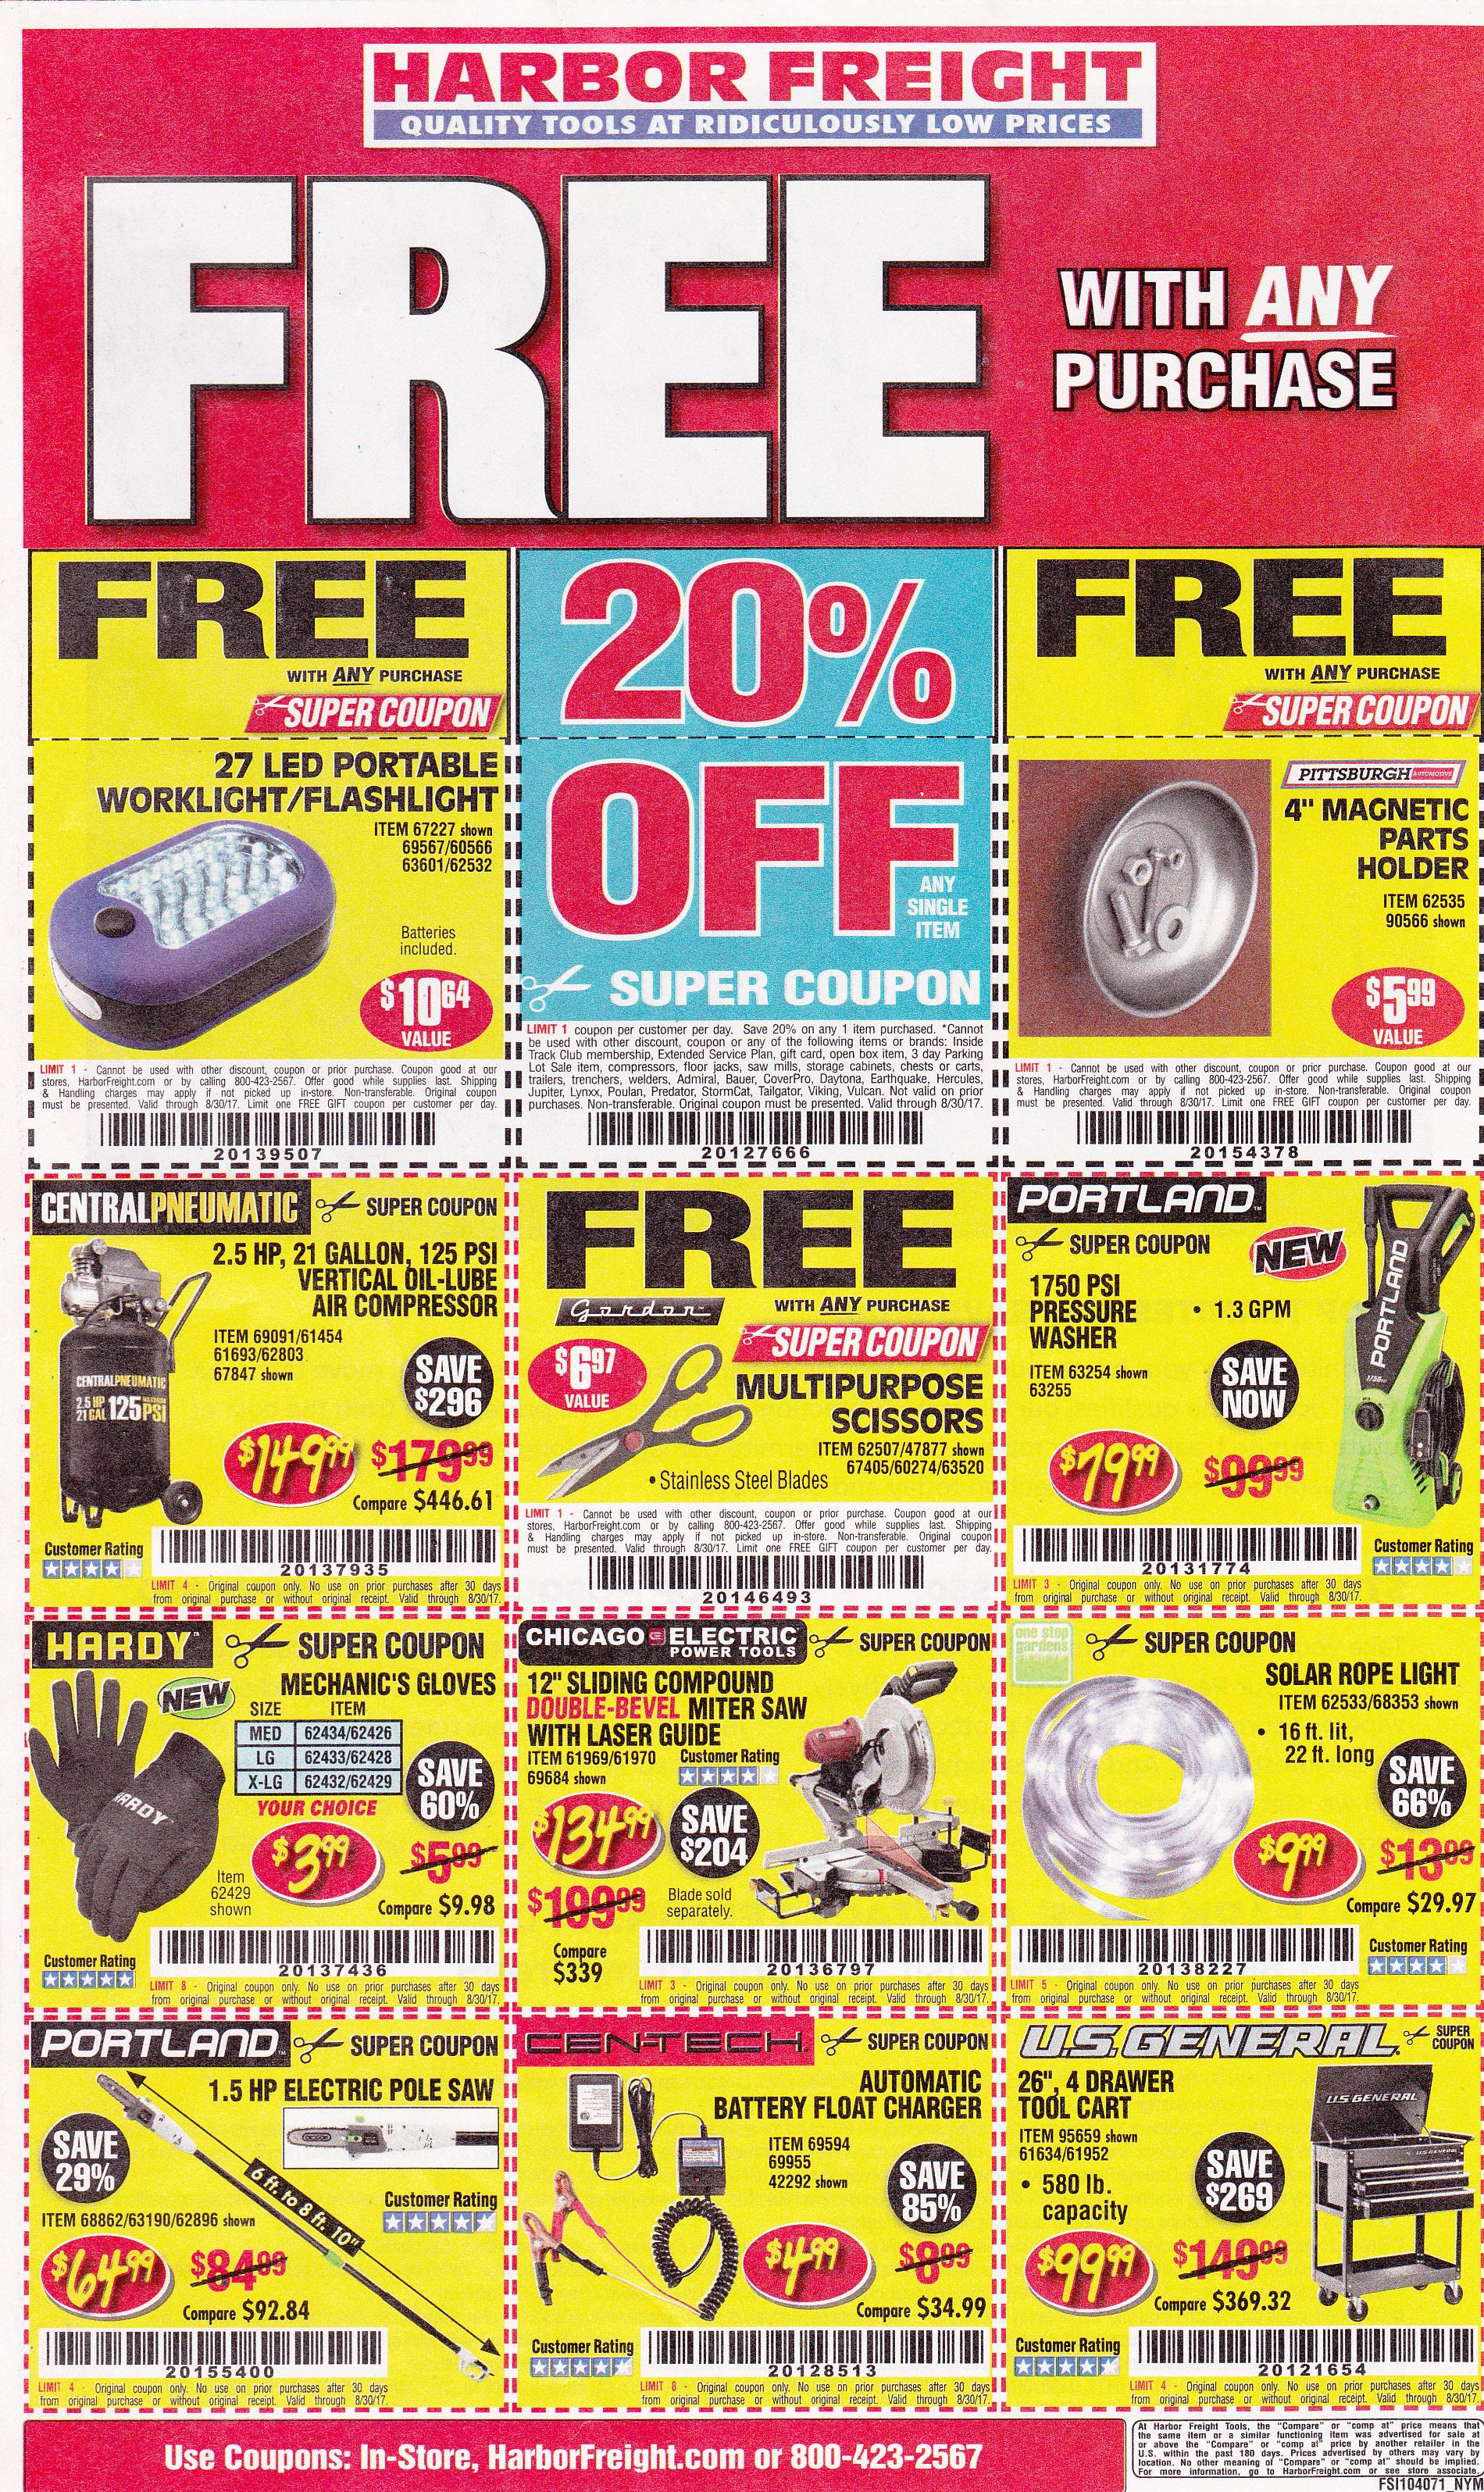 2017 Harbor Freight Coupons Page 2 Ford Explorer And